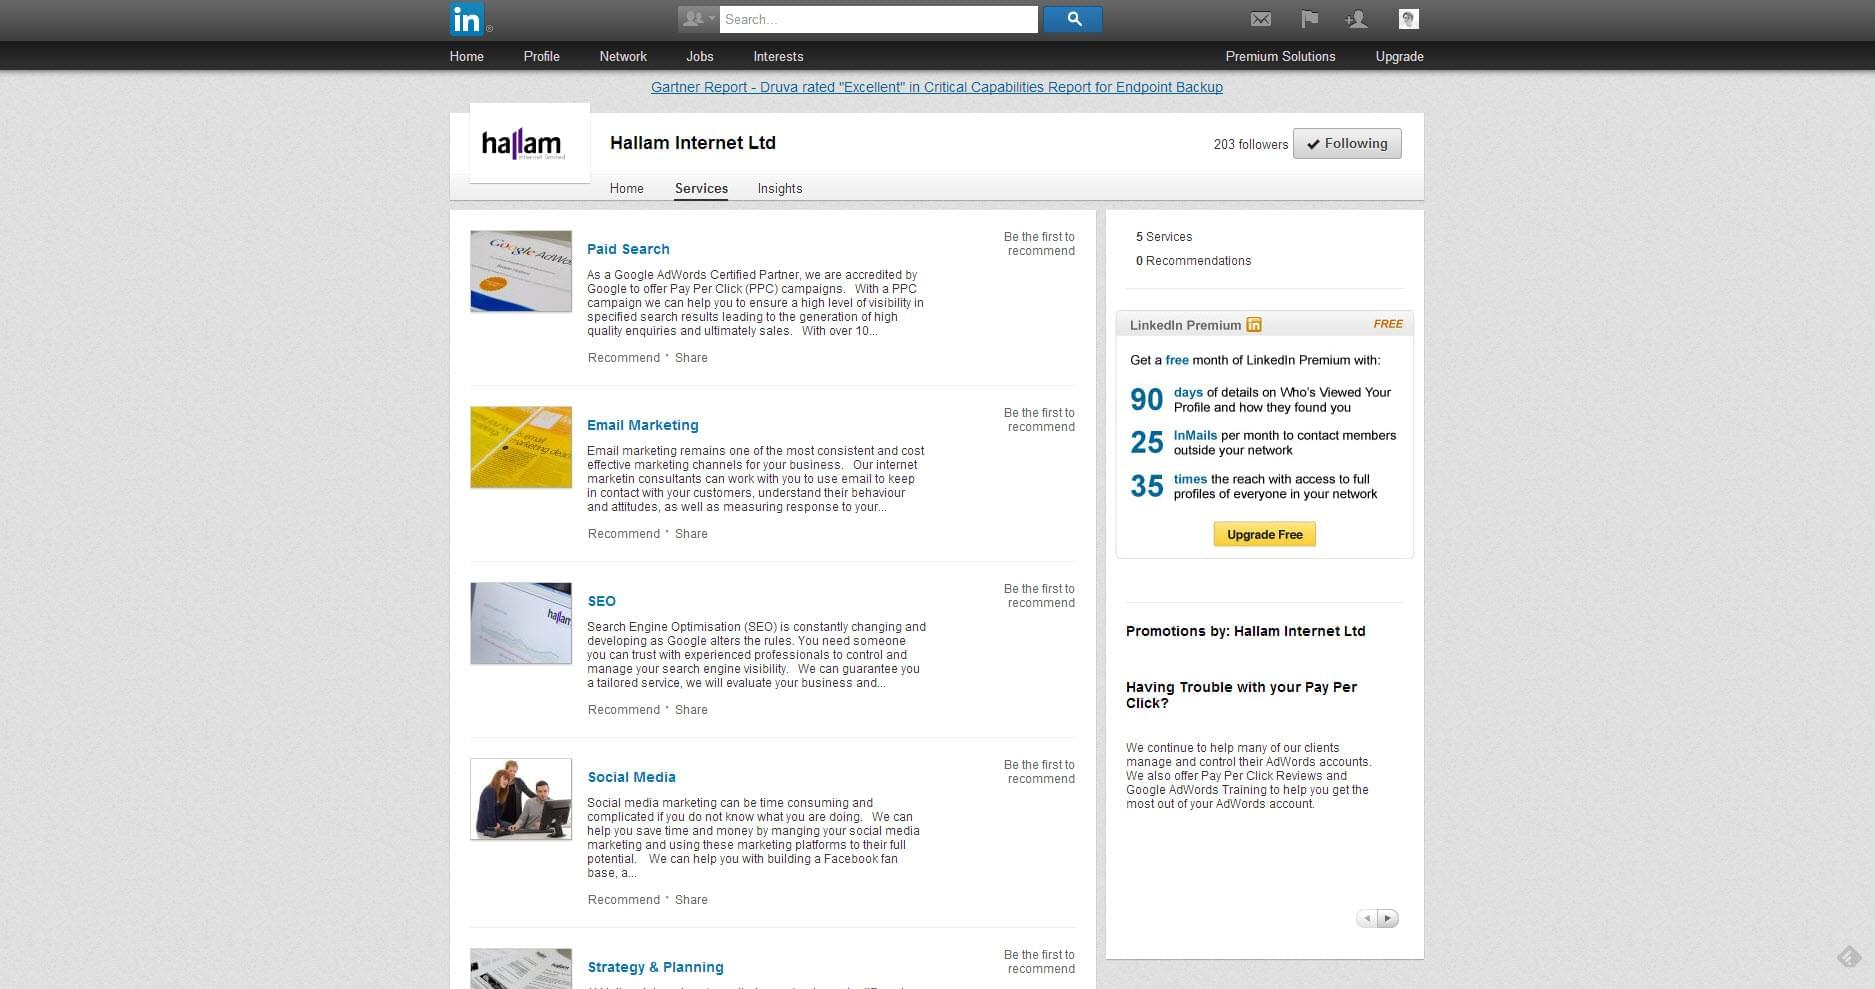 LinkedIn Products & Services Tab Removed